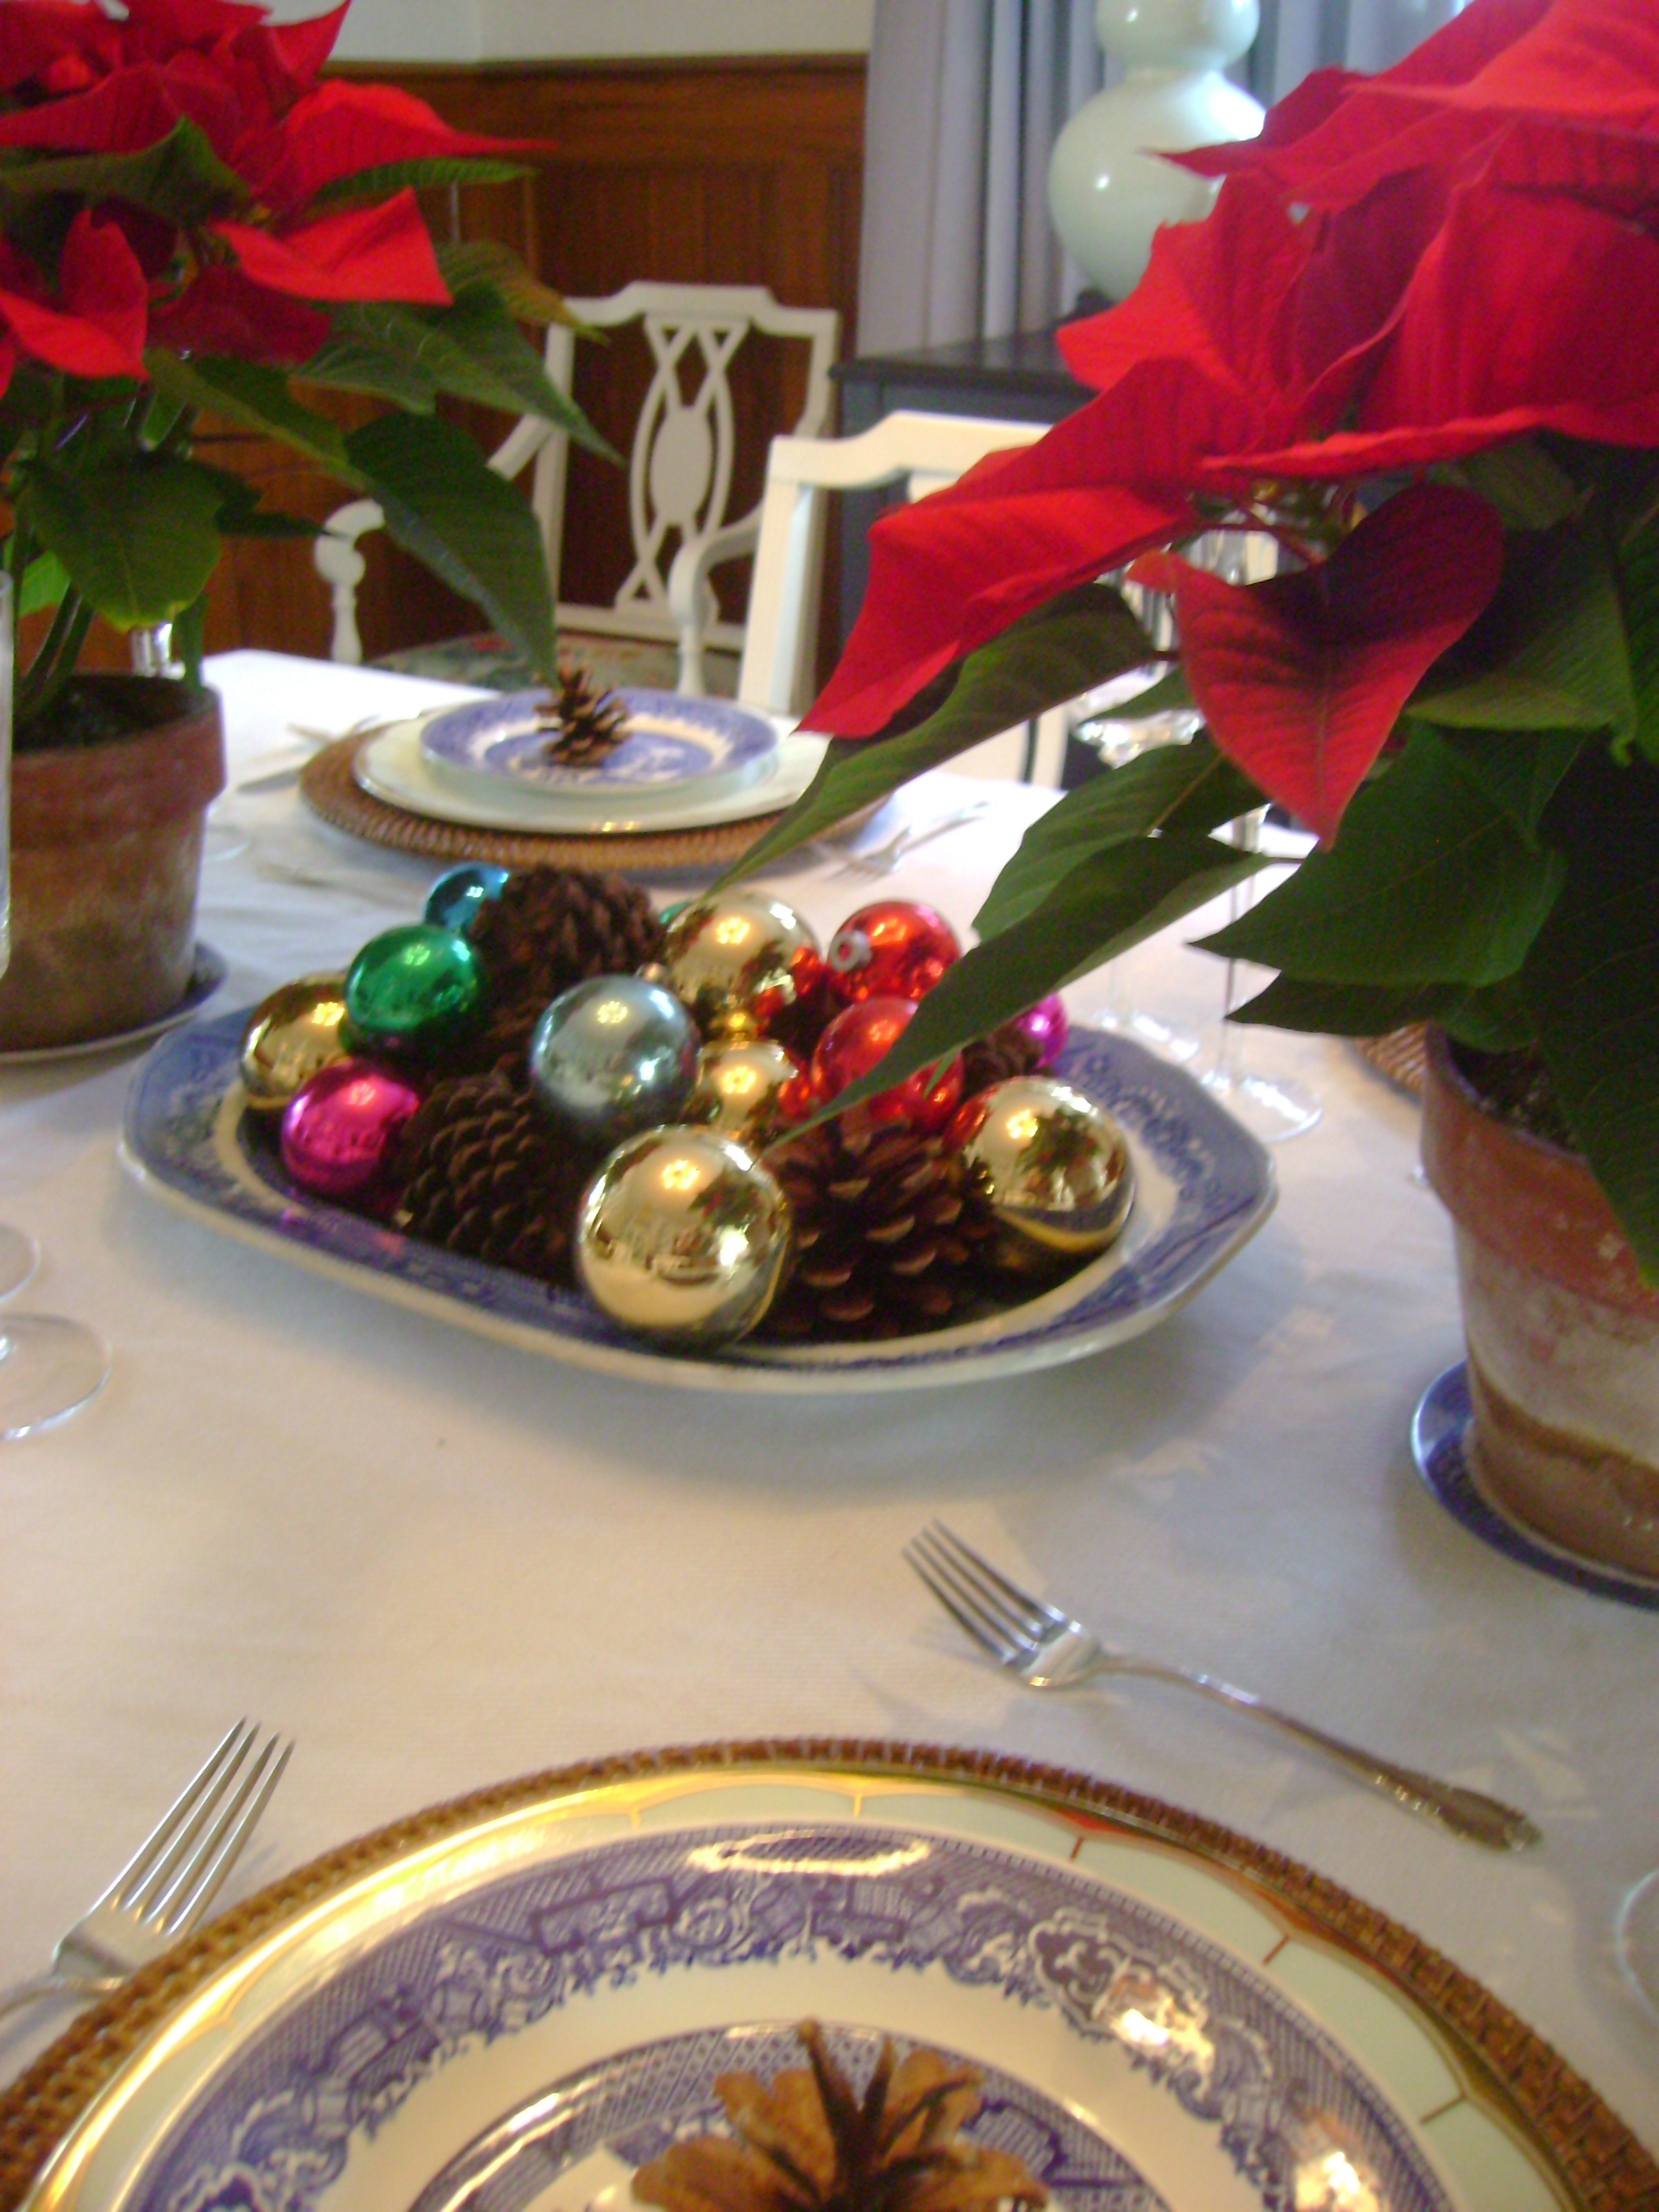 Vintage ornaments, pinecones and an antique patter decorate the table